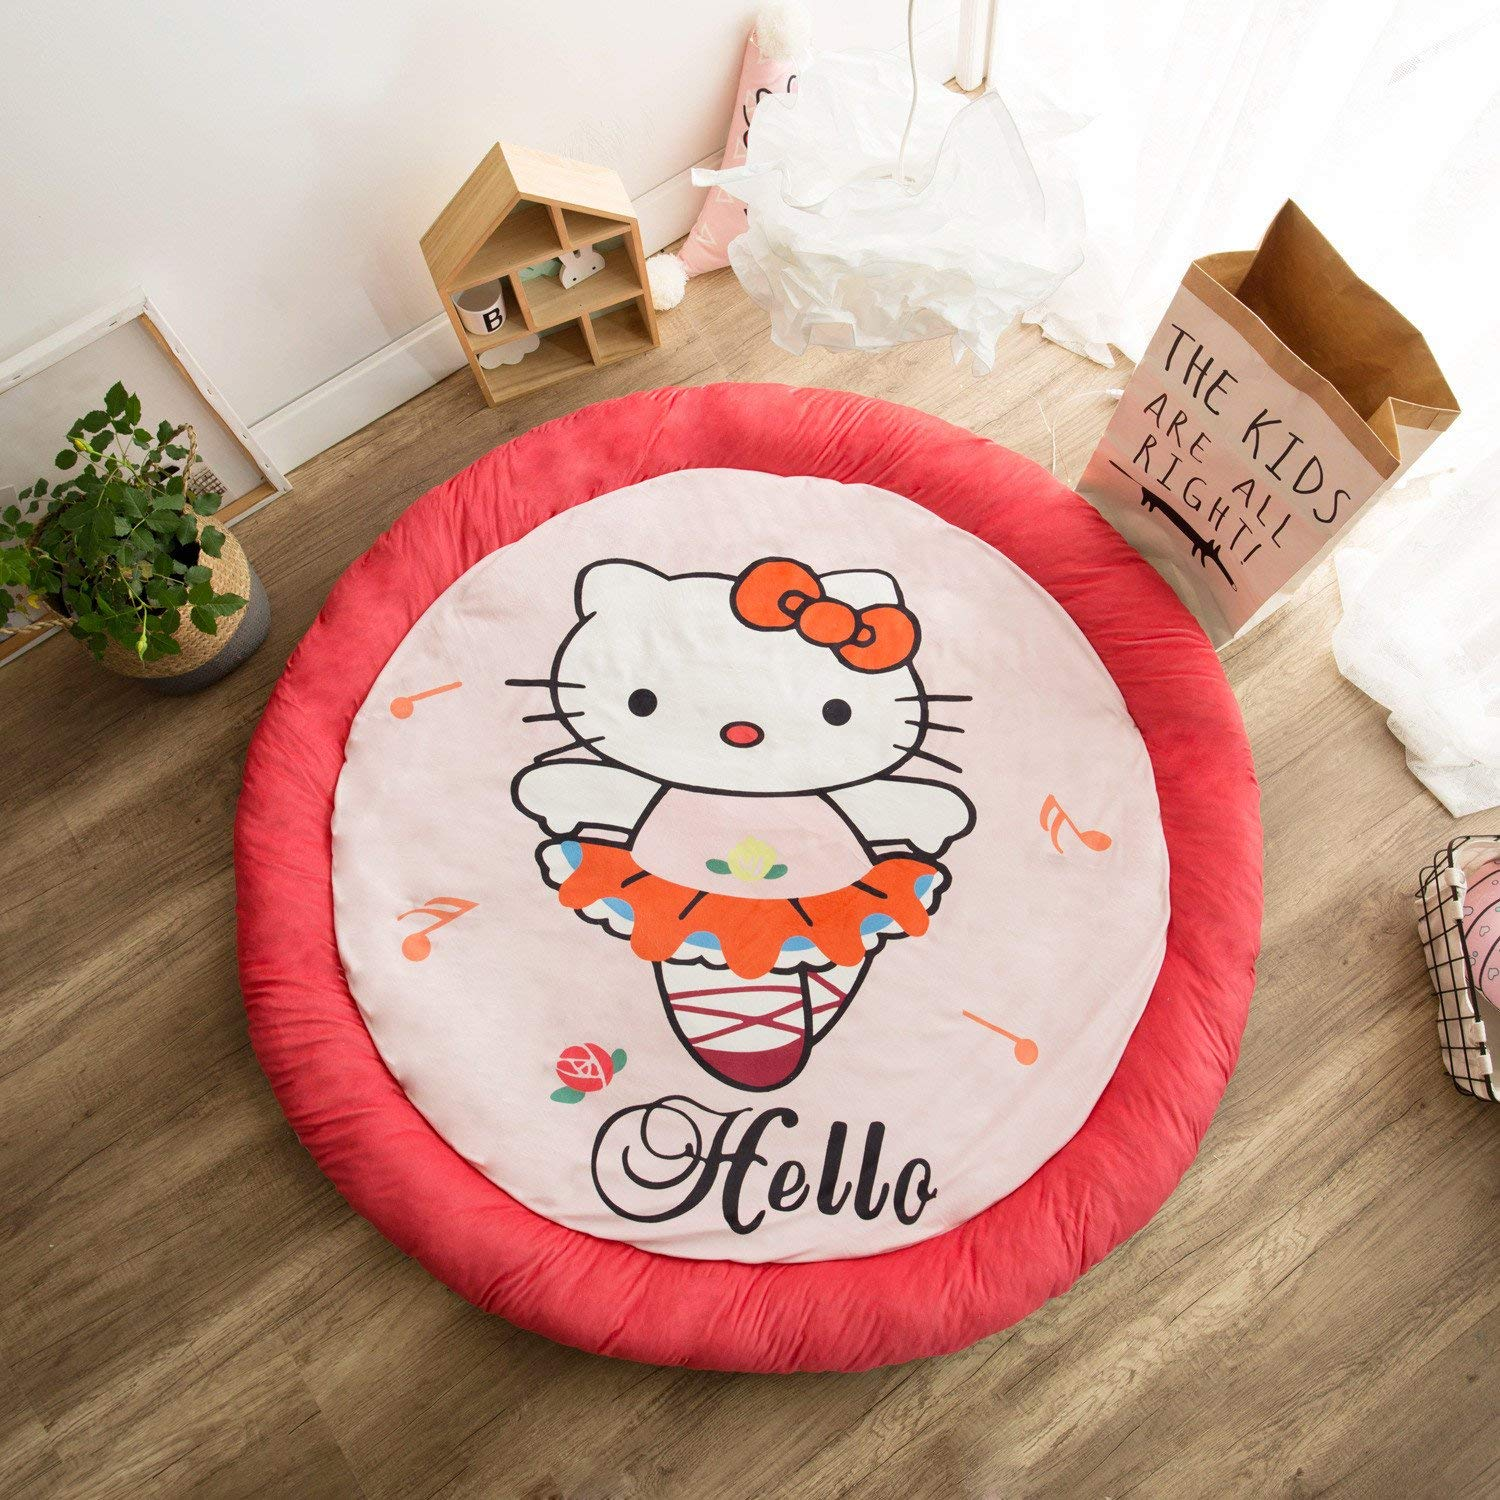 Soft Fenced Round Rug Cotton Filling Play Mat Extra-Thick for Kids Flannel Round Mat for Kids Room Decor 58.5 x 58.5 in (kitty red)